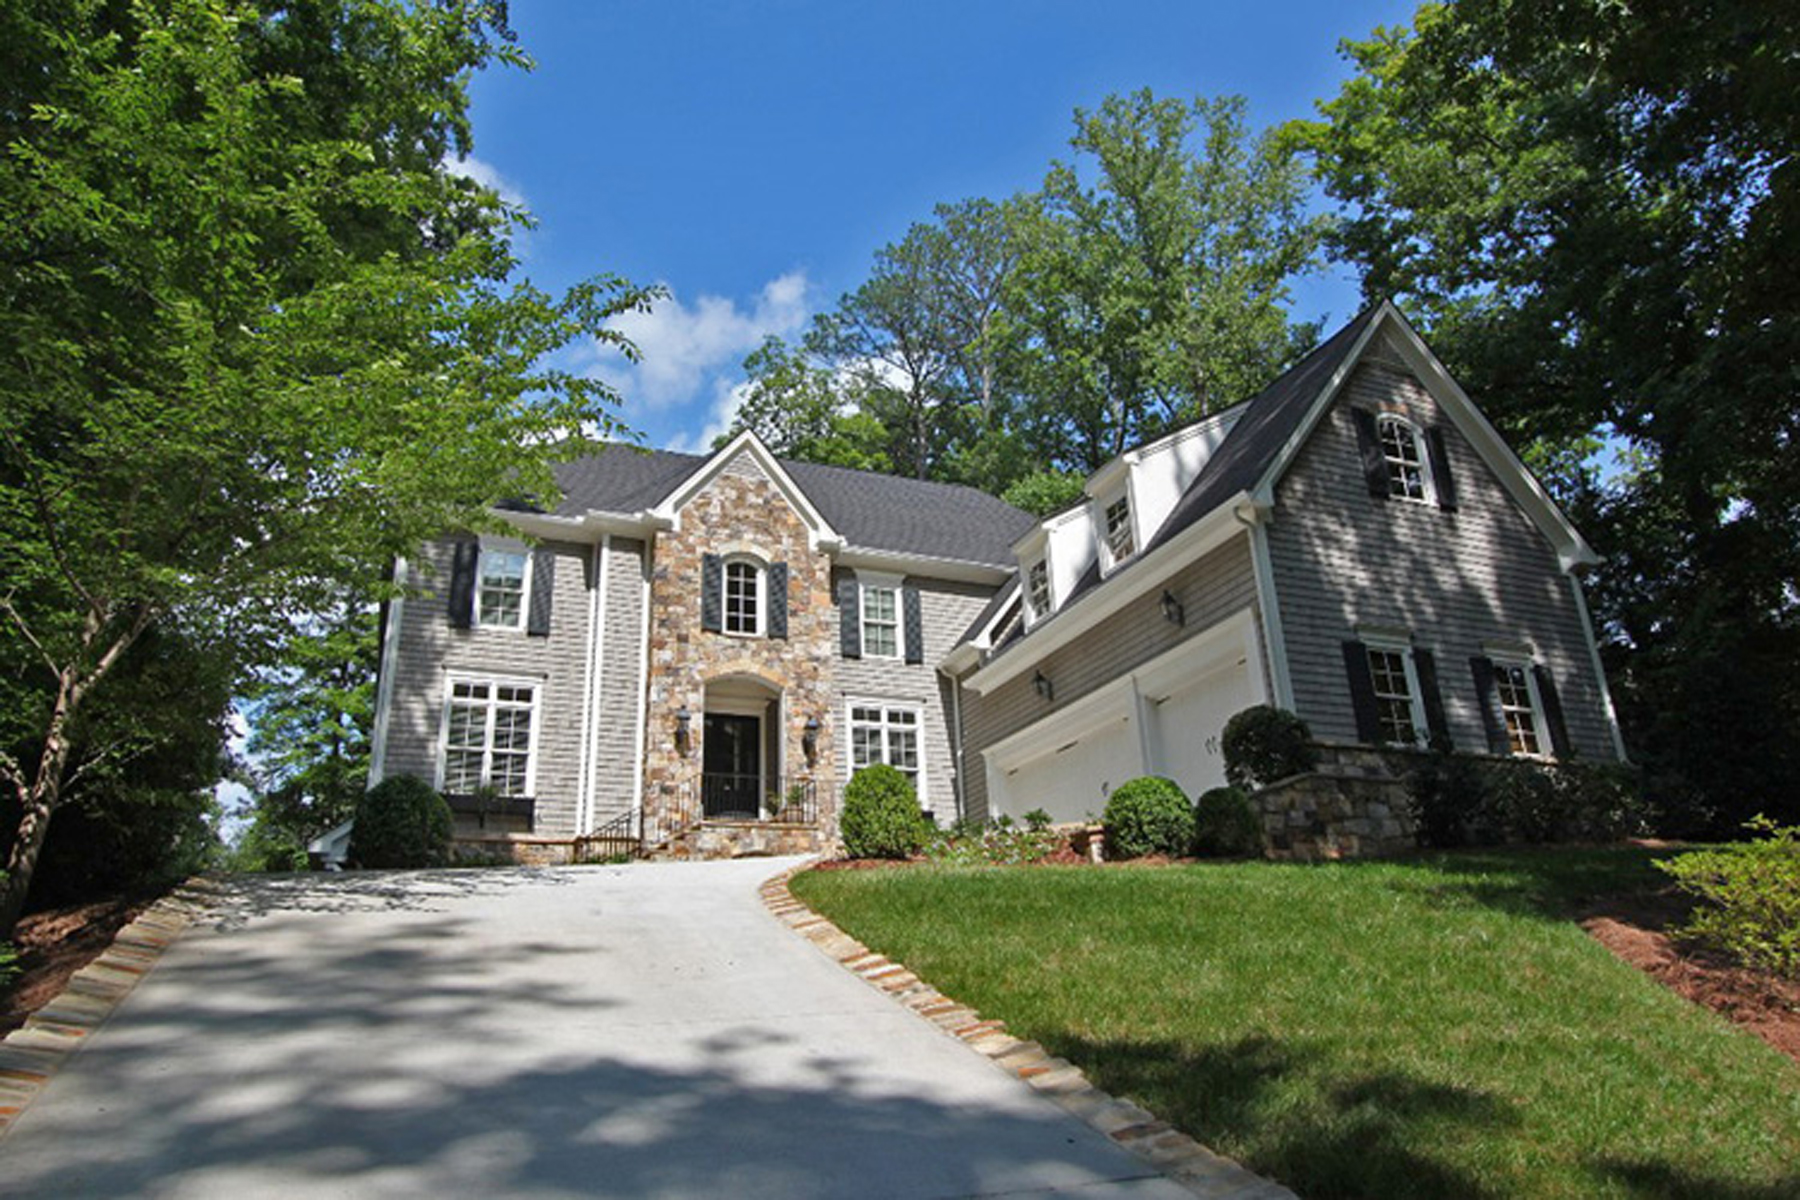 Single Family Home for Sale at Wonderful Newer Construction Home 3363 Wood Valley Road NW Buckhead, Atlanta, Georgia, 30327 United States